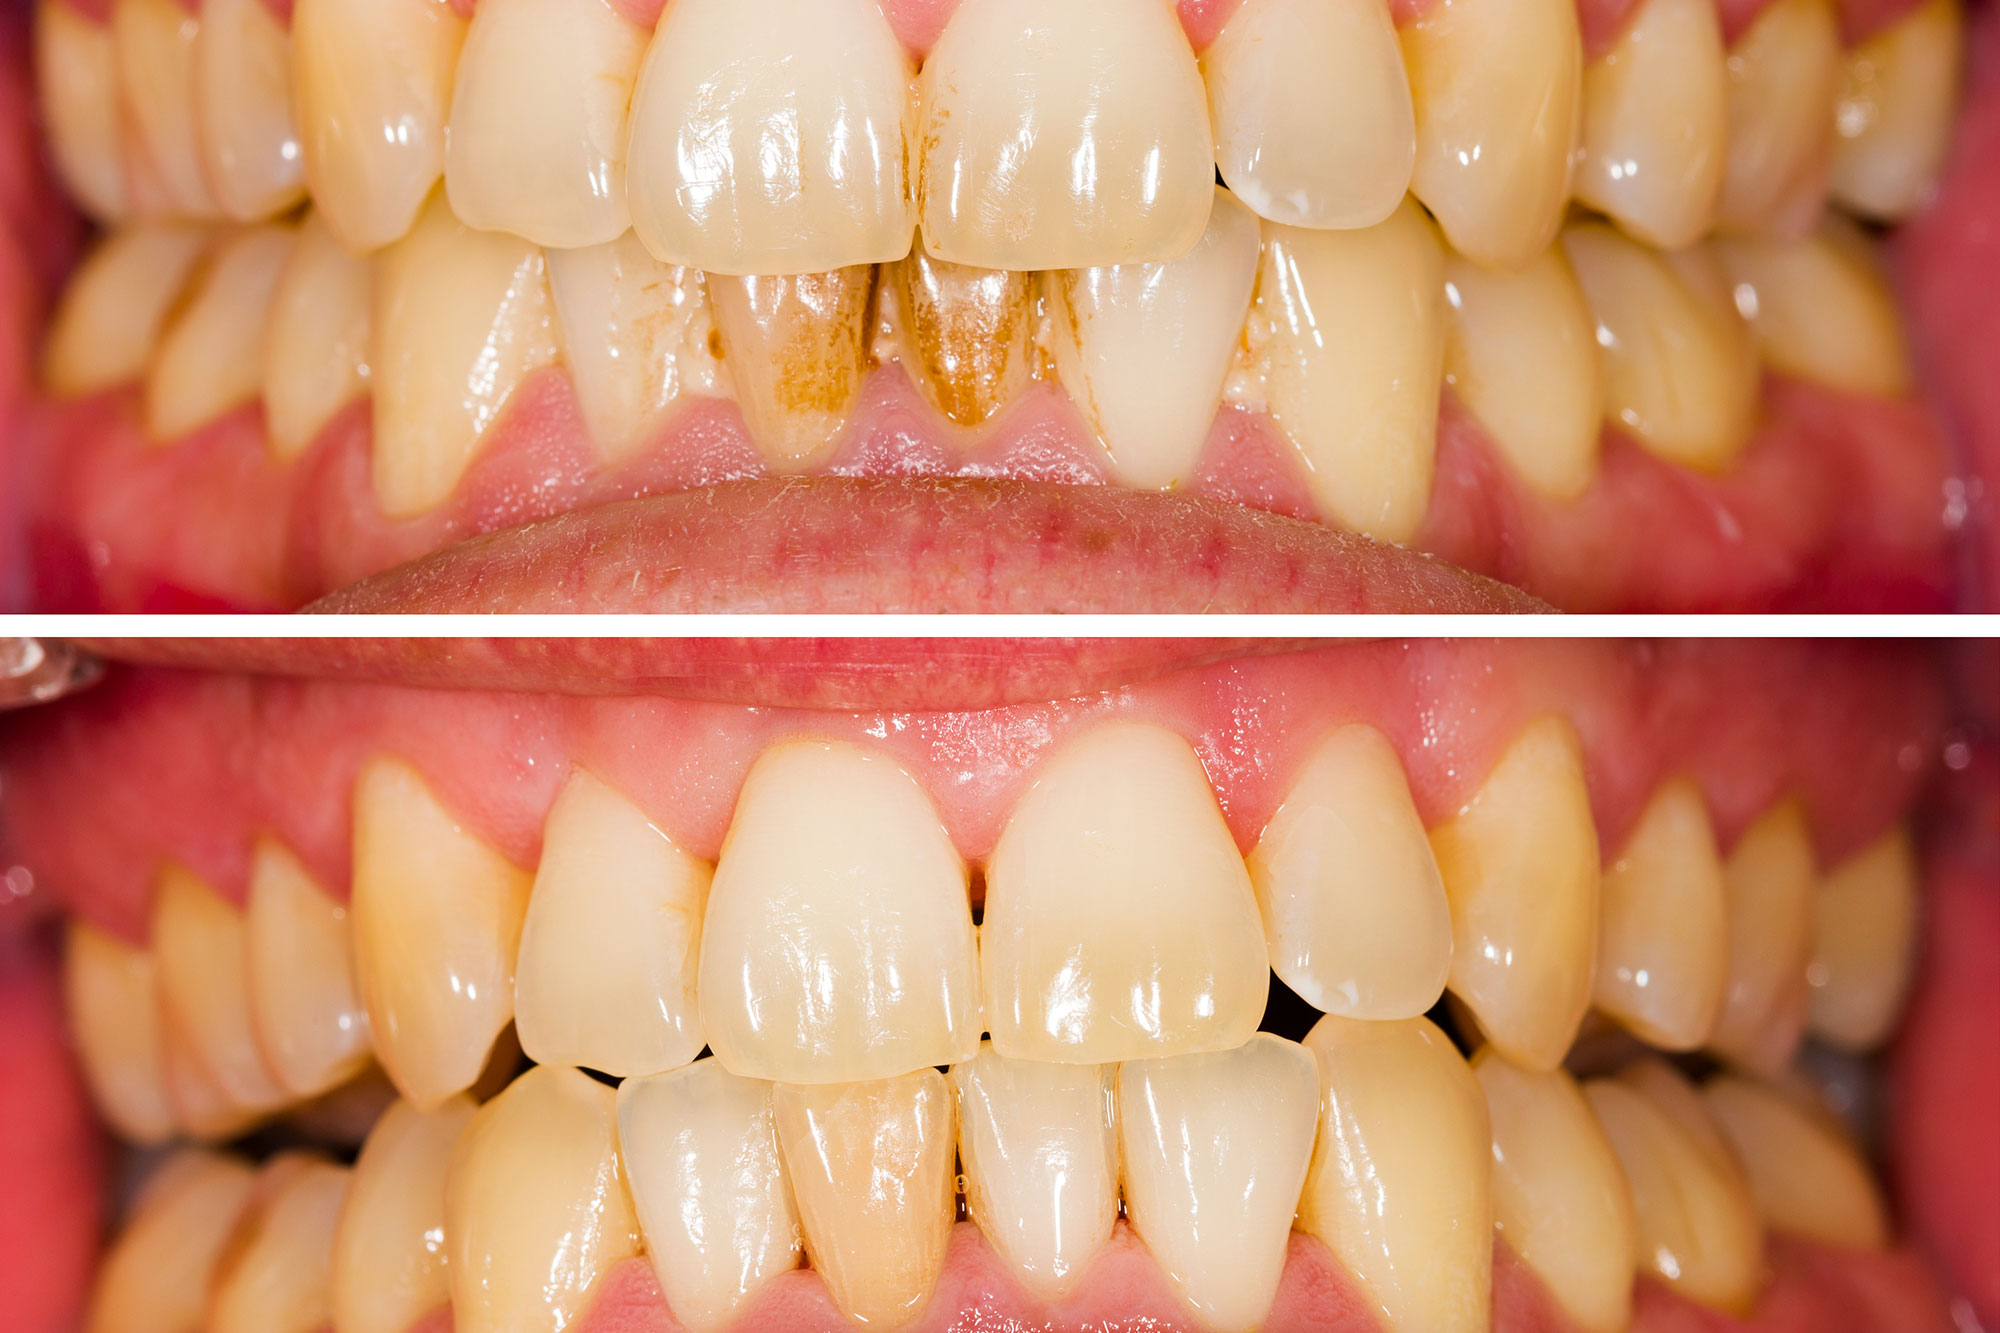 Dental-Planing-and-Dental-Scaling.jpg